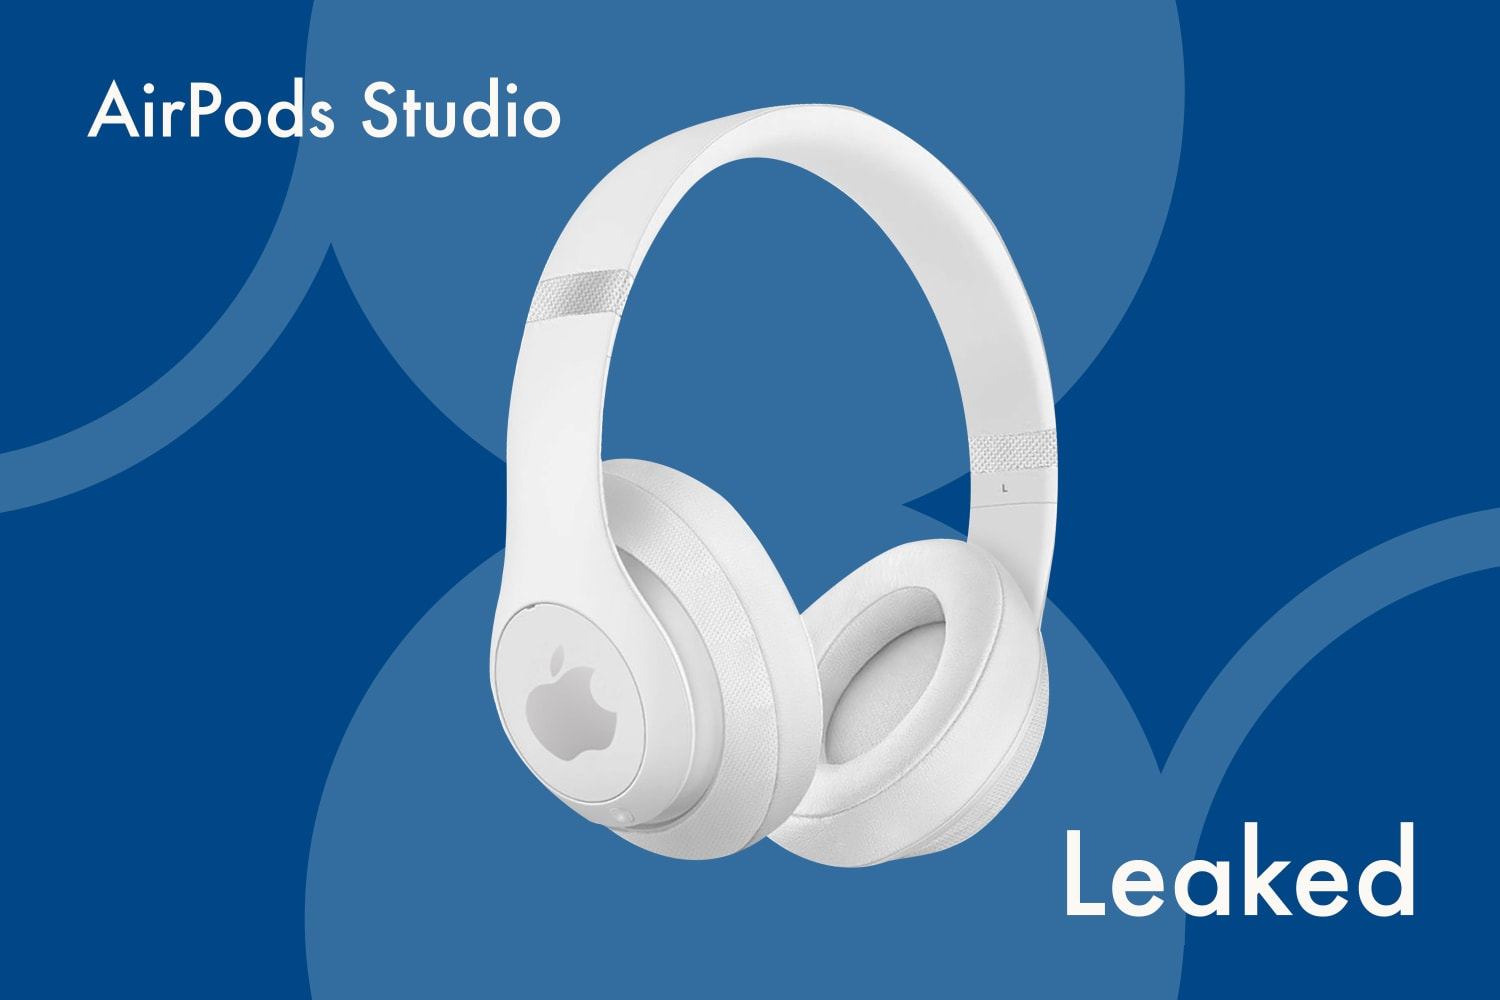 leaked-photos-of-airpods-studio-show-surprising-design-changes-20200918-1